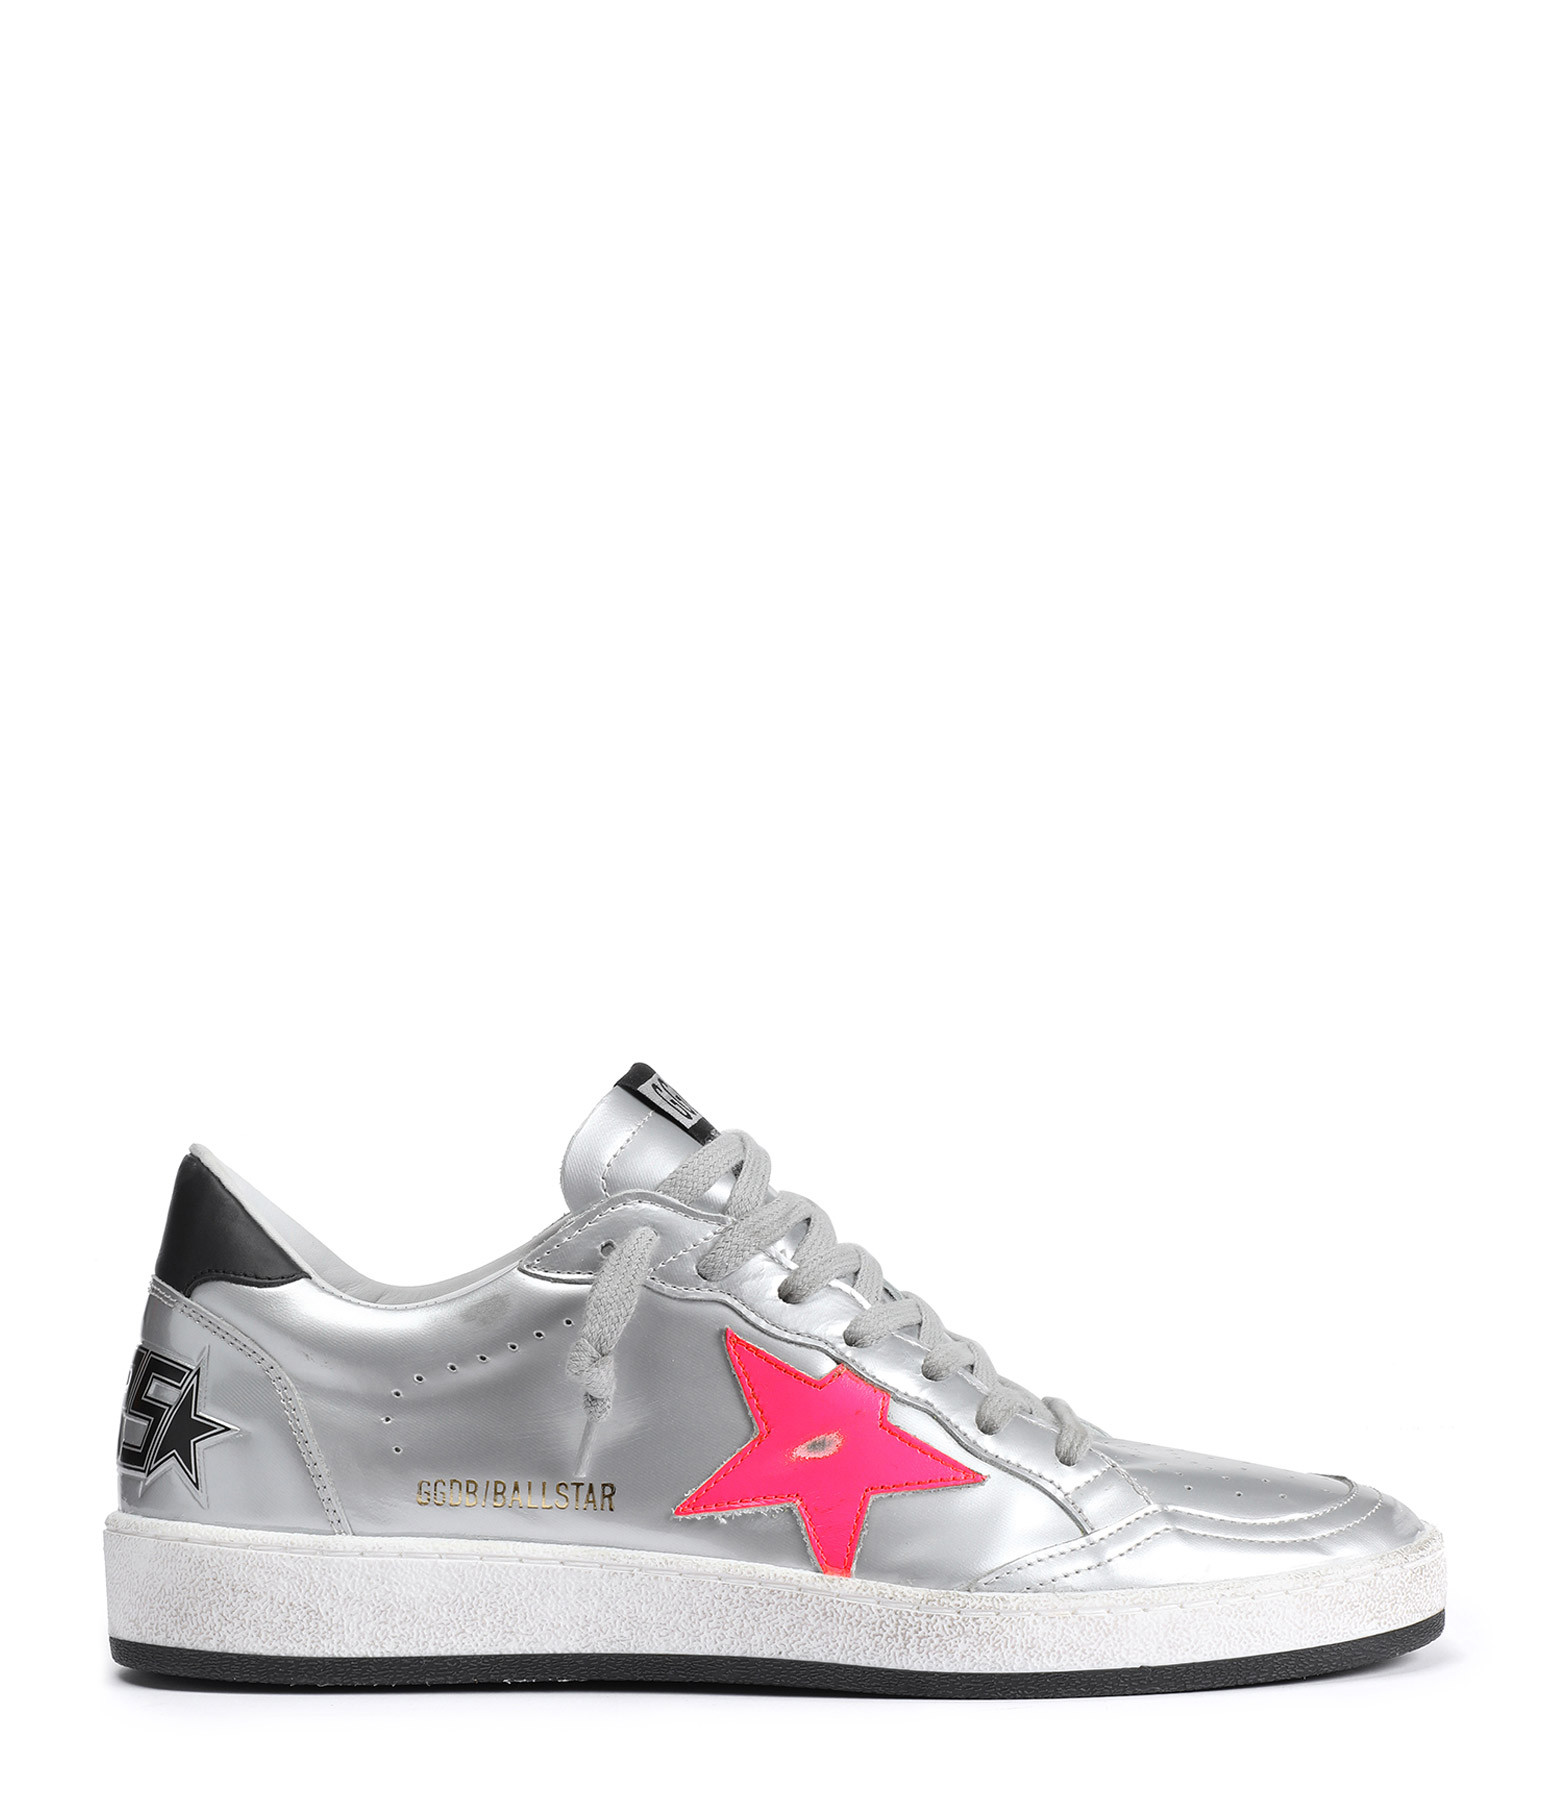 GOLDEN GOOSE - Baskets Ball Star Cuir Argenté Rose Fushia